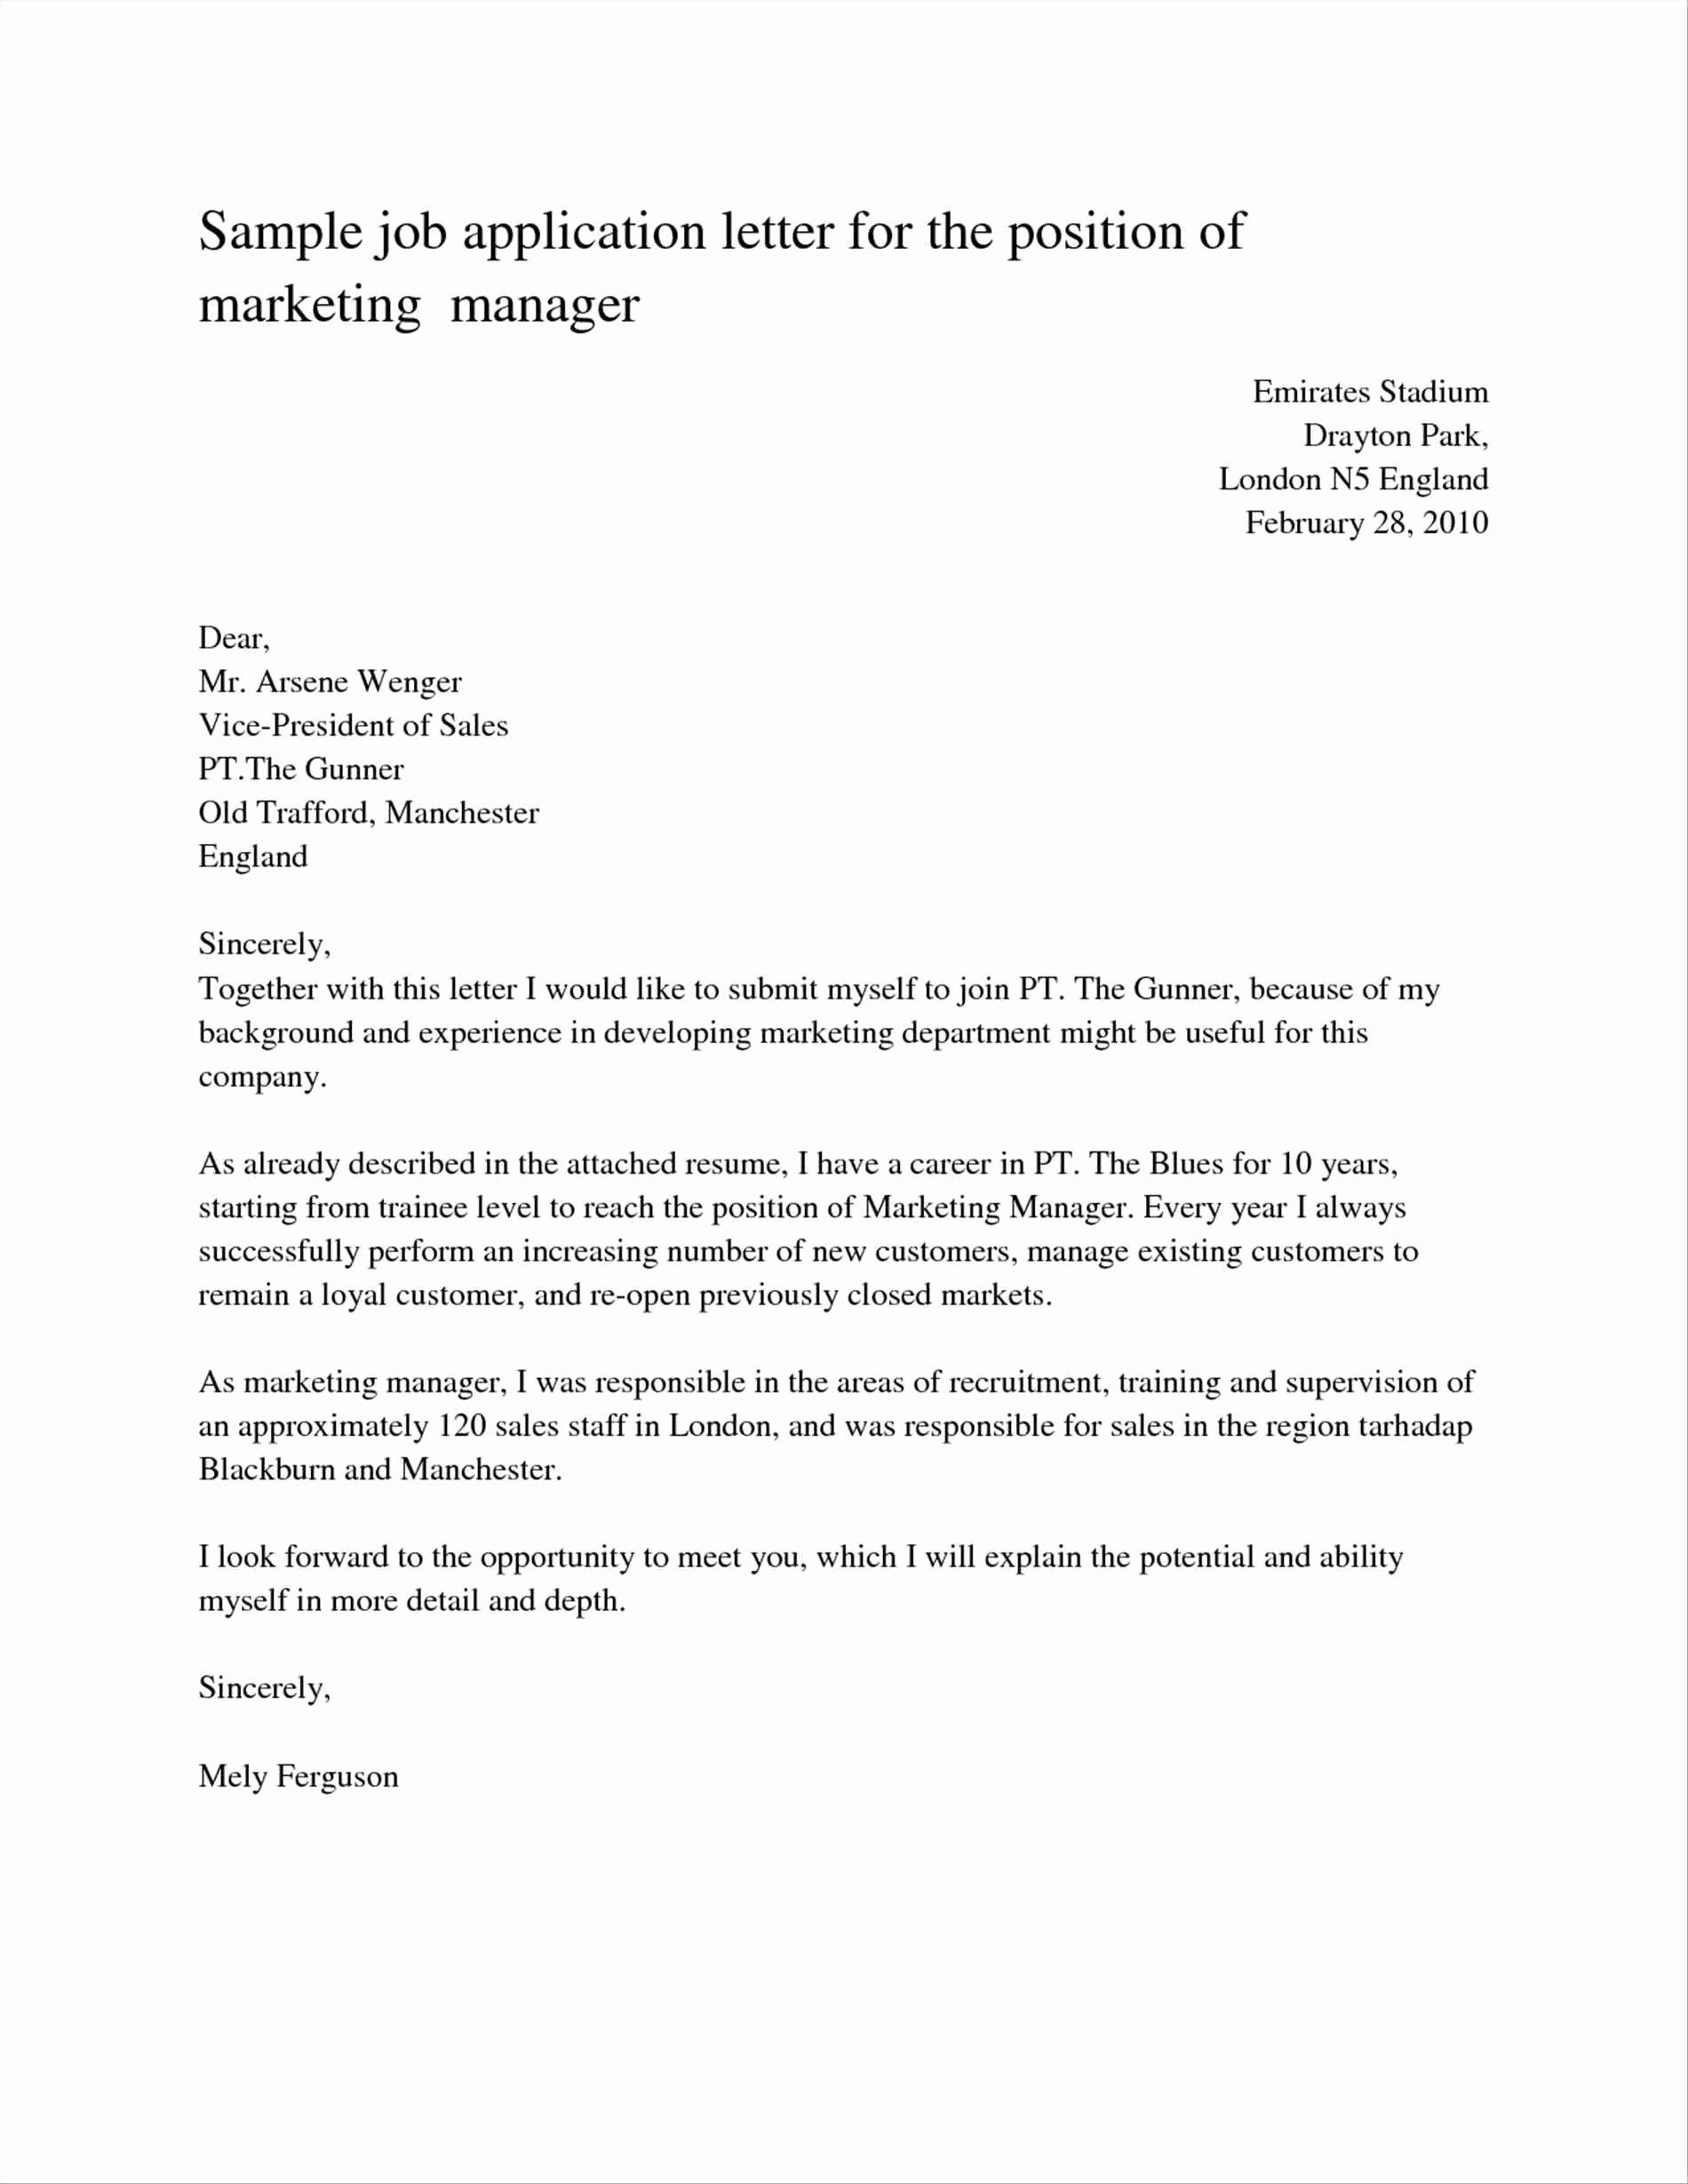 Valid Cover Letter For Marketing Executive Job Job